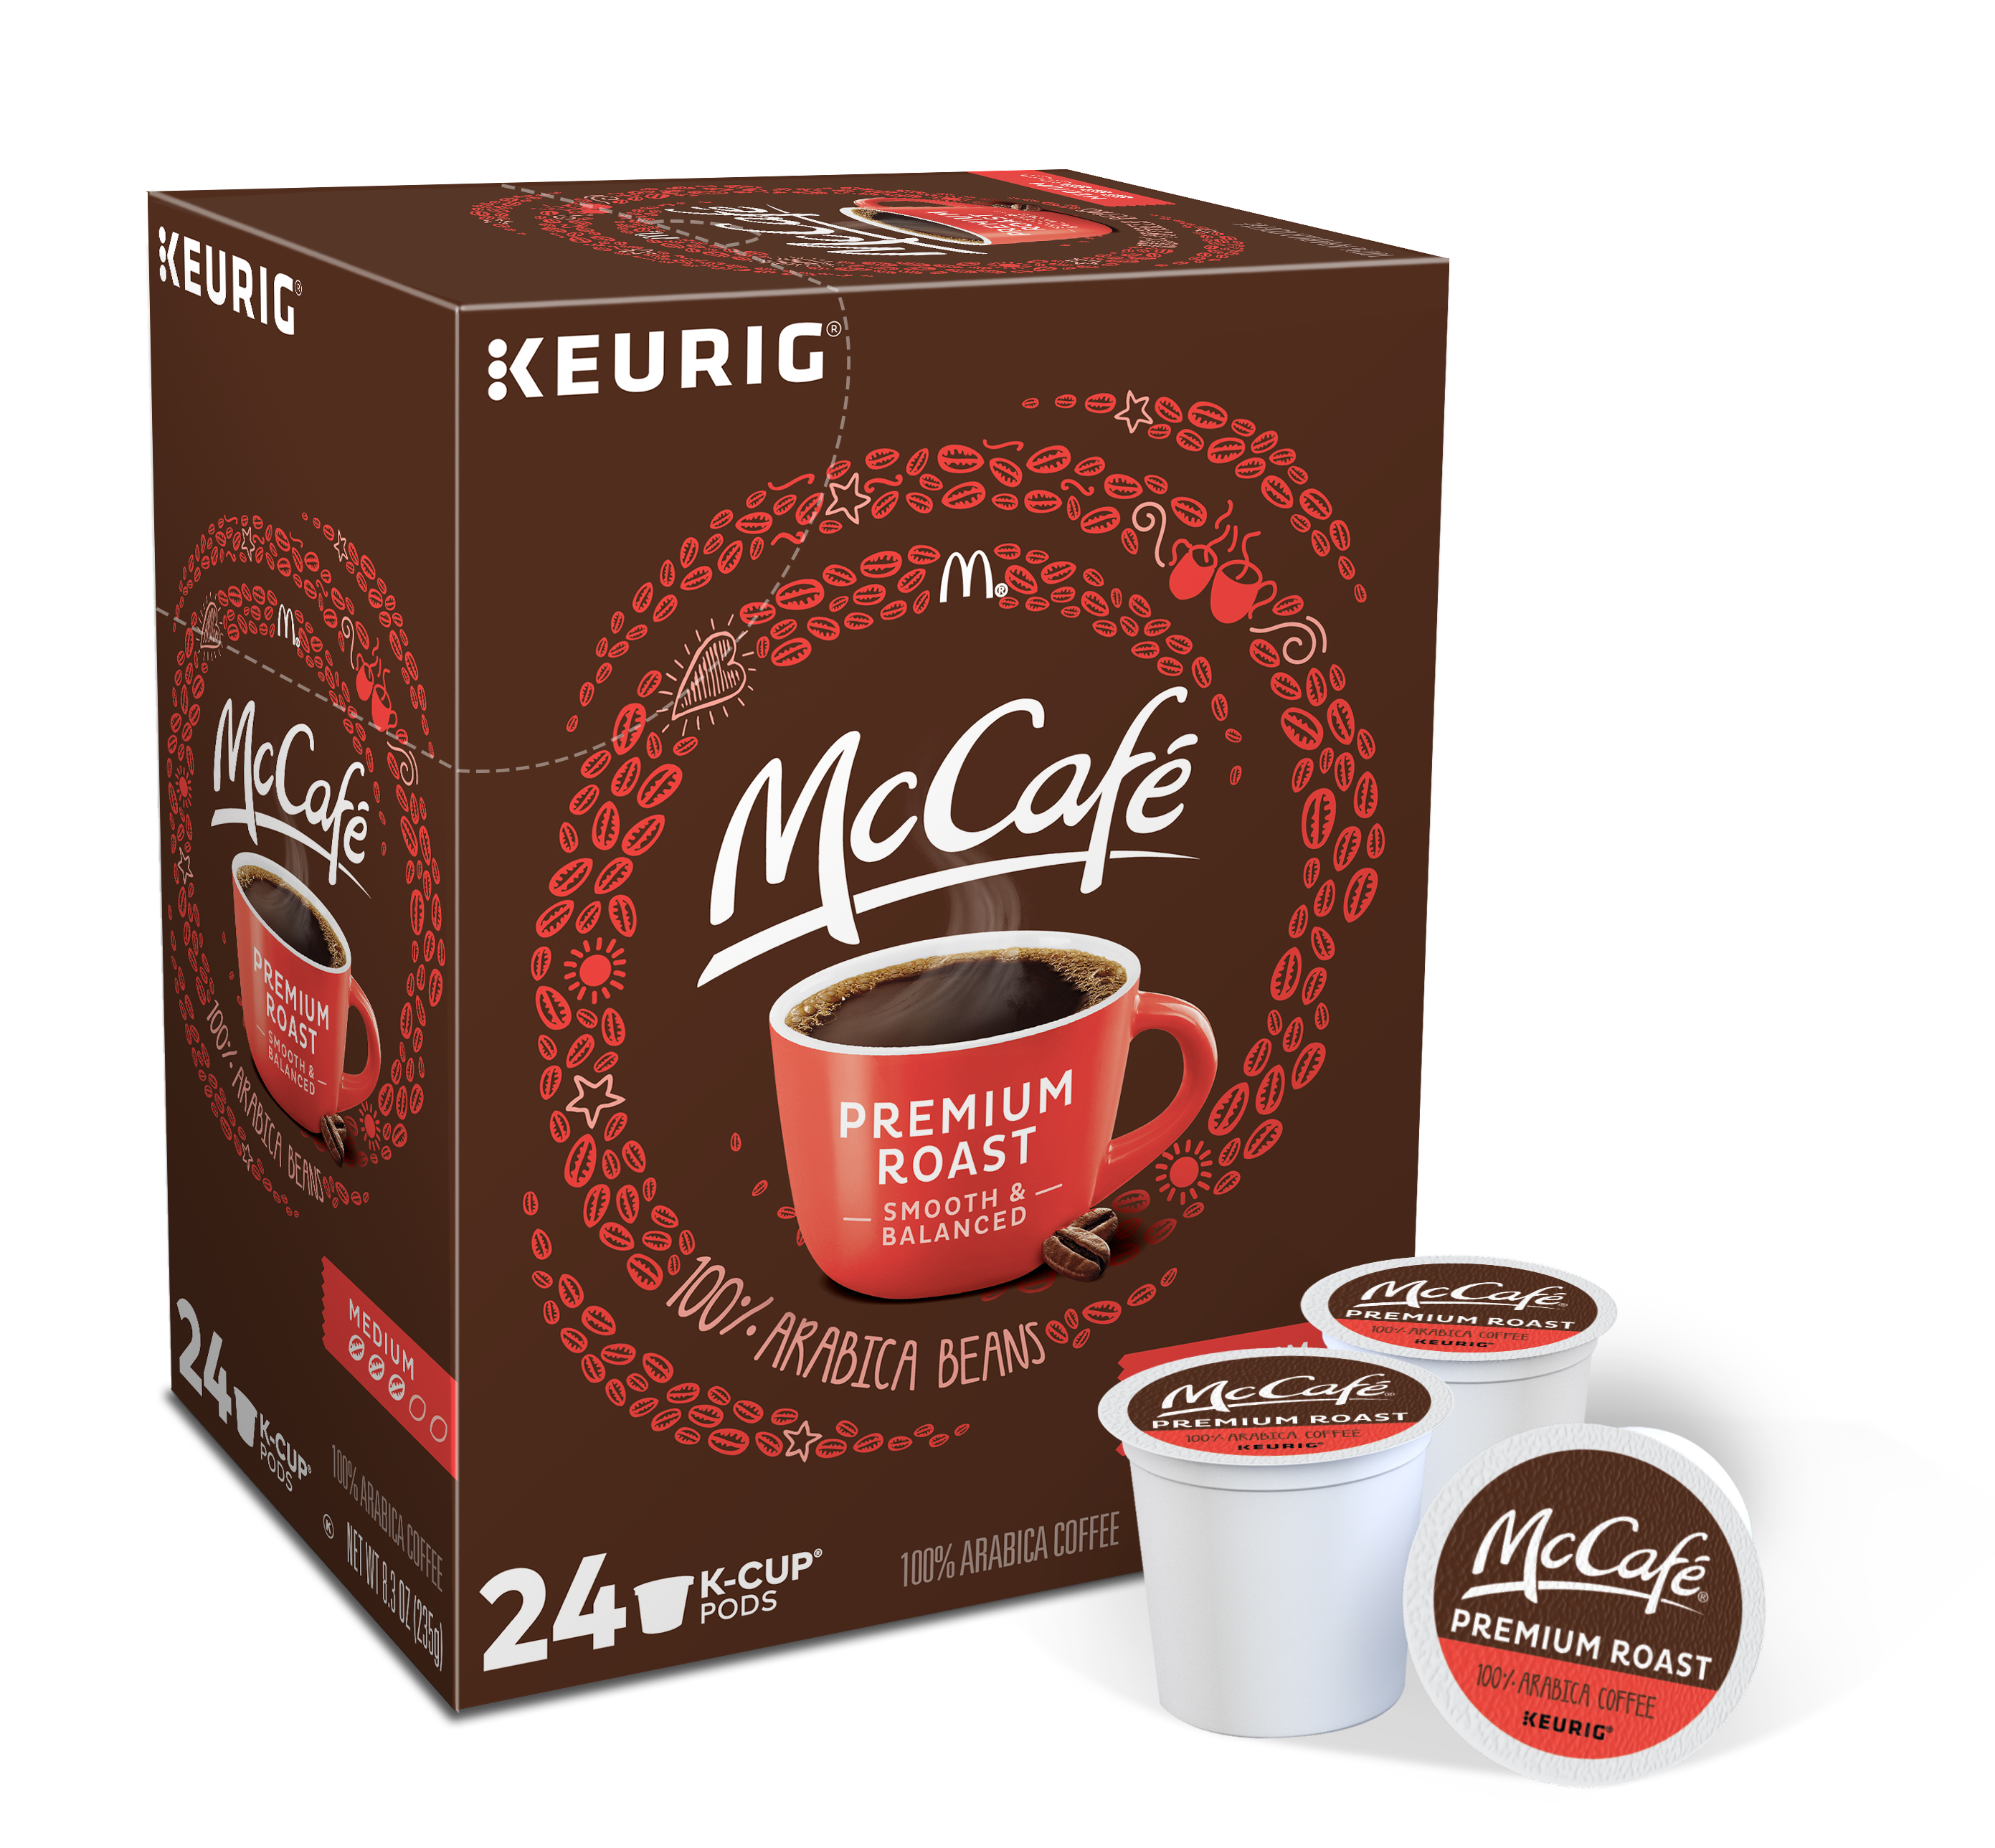 McDonalds Coffee At Home?! Yes, Please. It Is So Weird